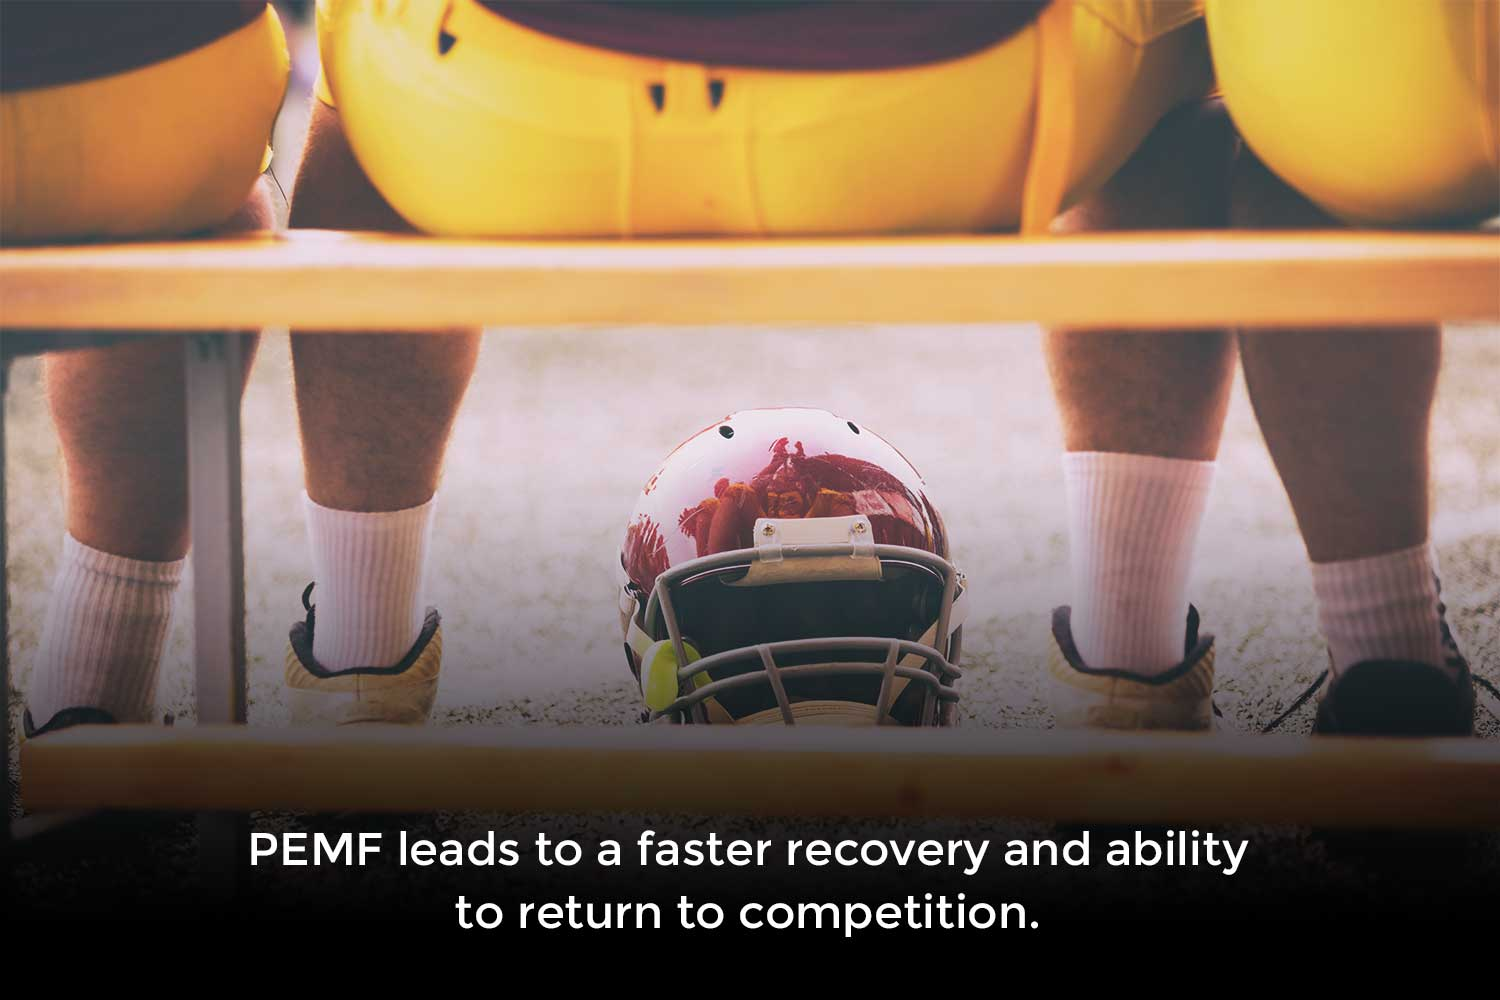 PEMF leads to a faster recovery and ability to return to competition.